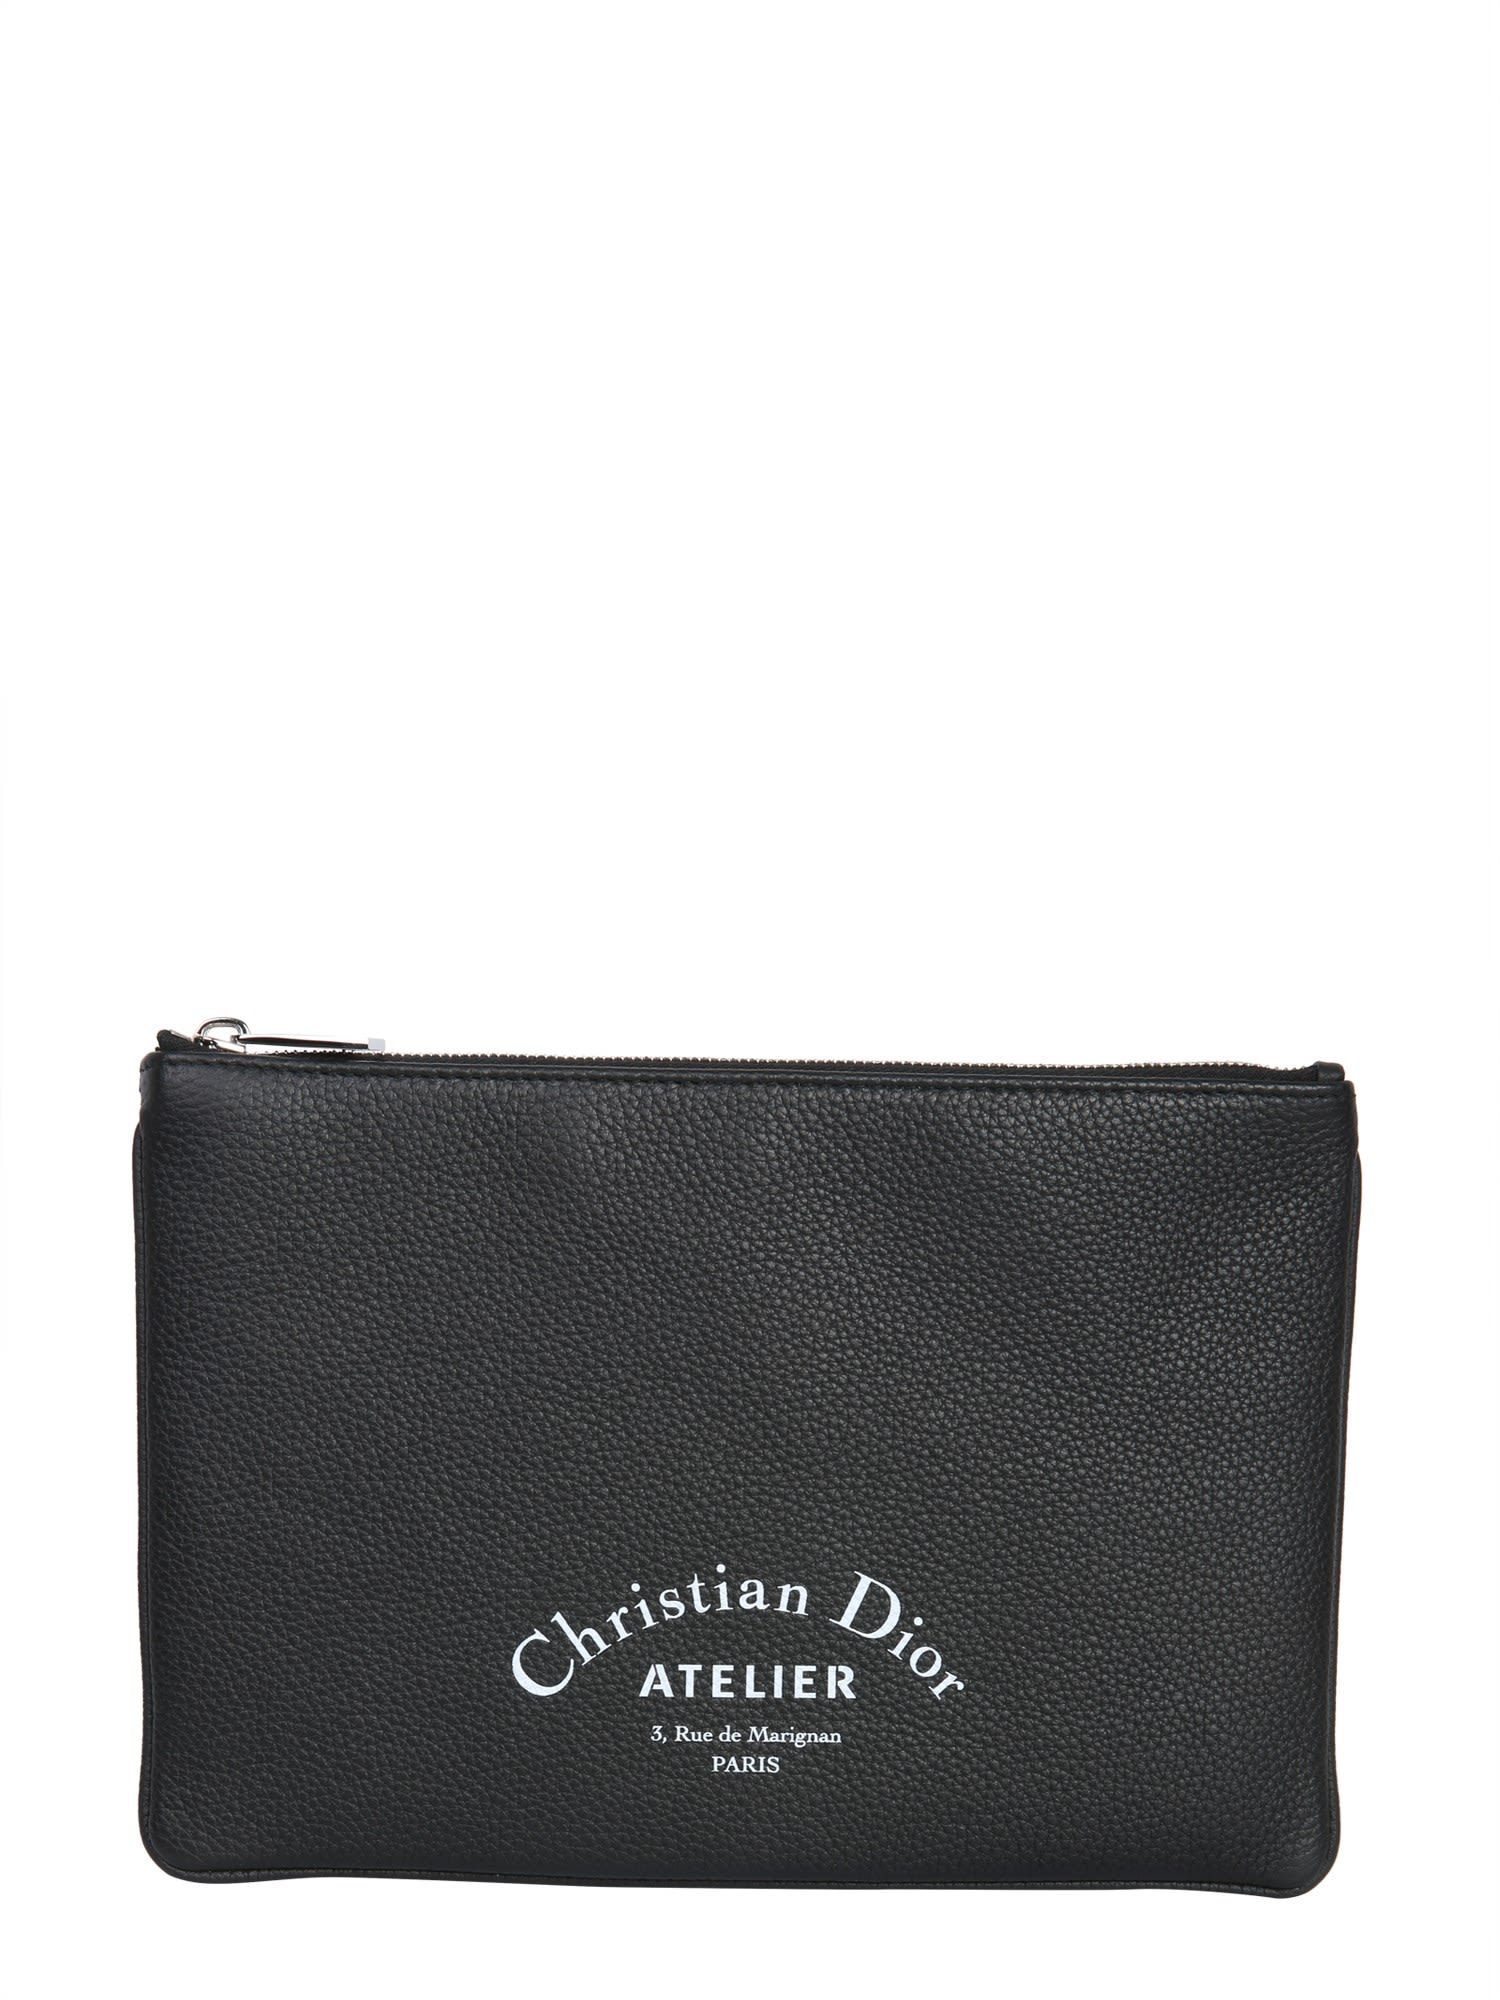 DIOR HOMME Small Leather Clutch, Nero